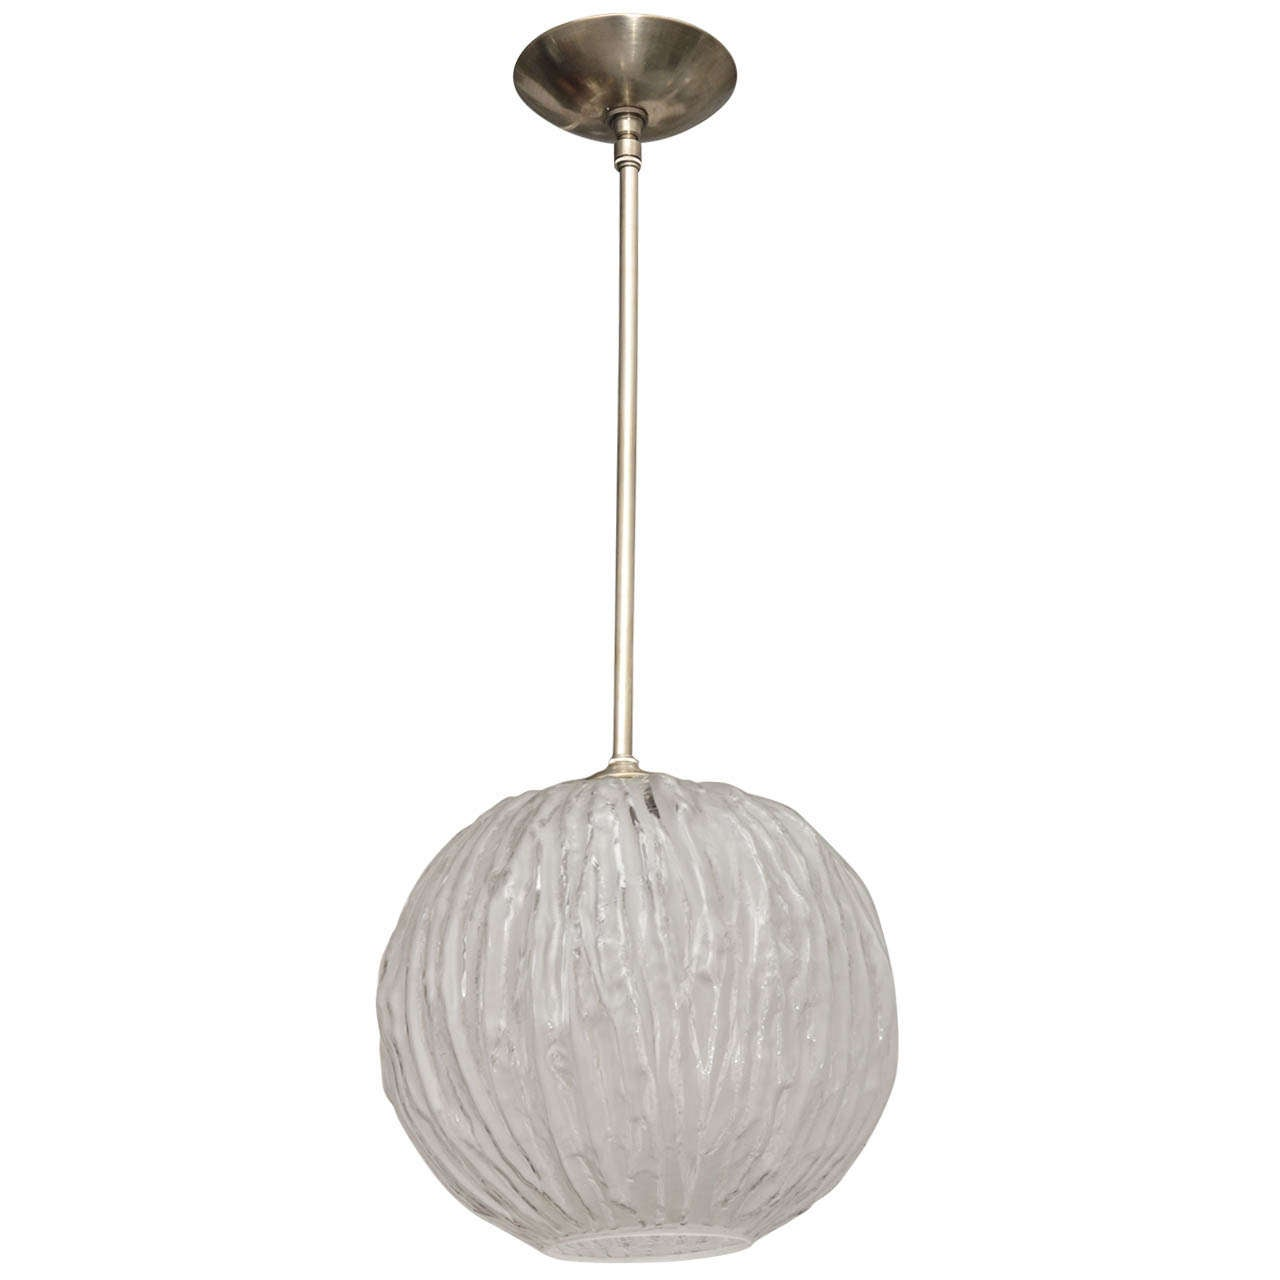 Frosted and clear murano glass pendant with vein pattern for sale at 1stdibs - Murano glass lighting ...